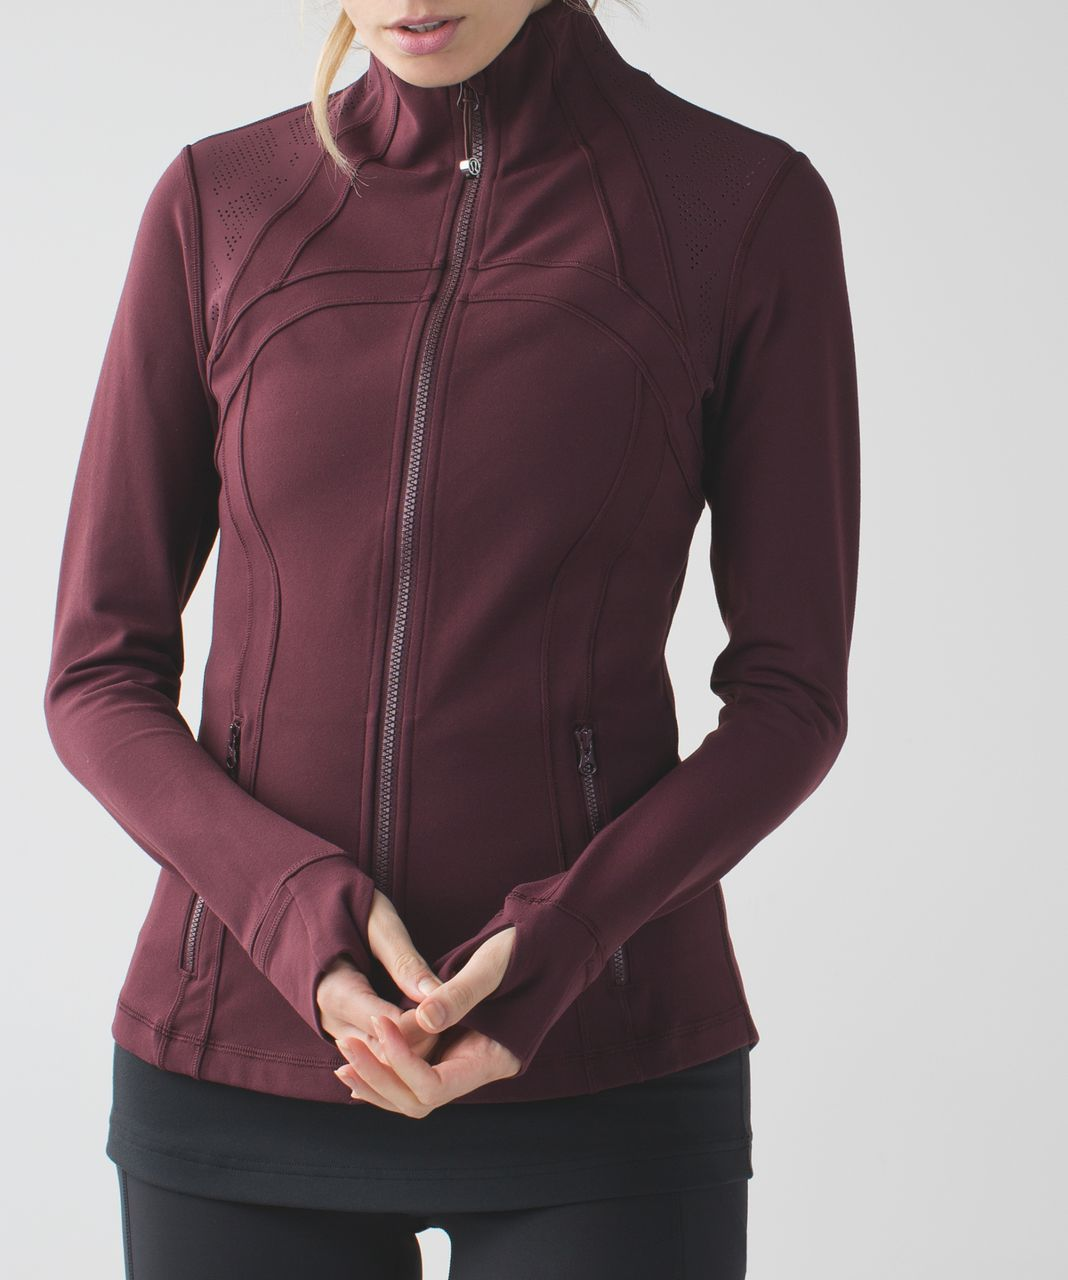 Lululemon Define Jacket *Laser Dot - Bordeaux Drama